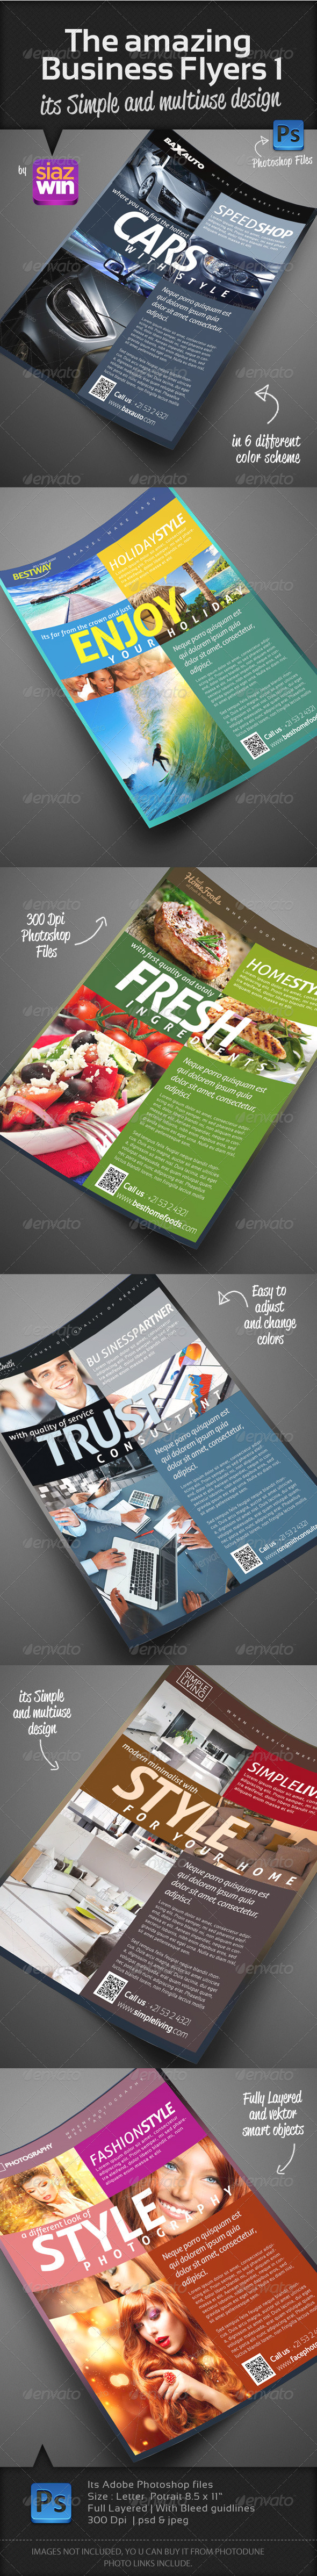 The Amazing Business Flyers 1